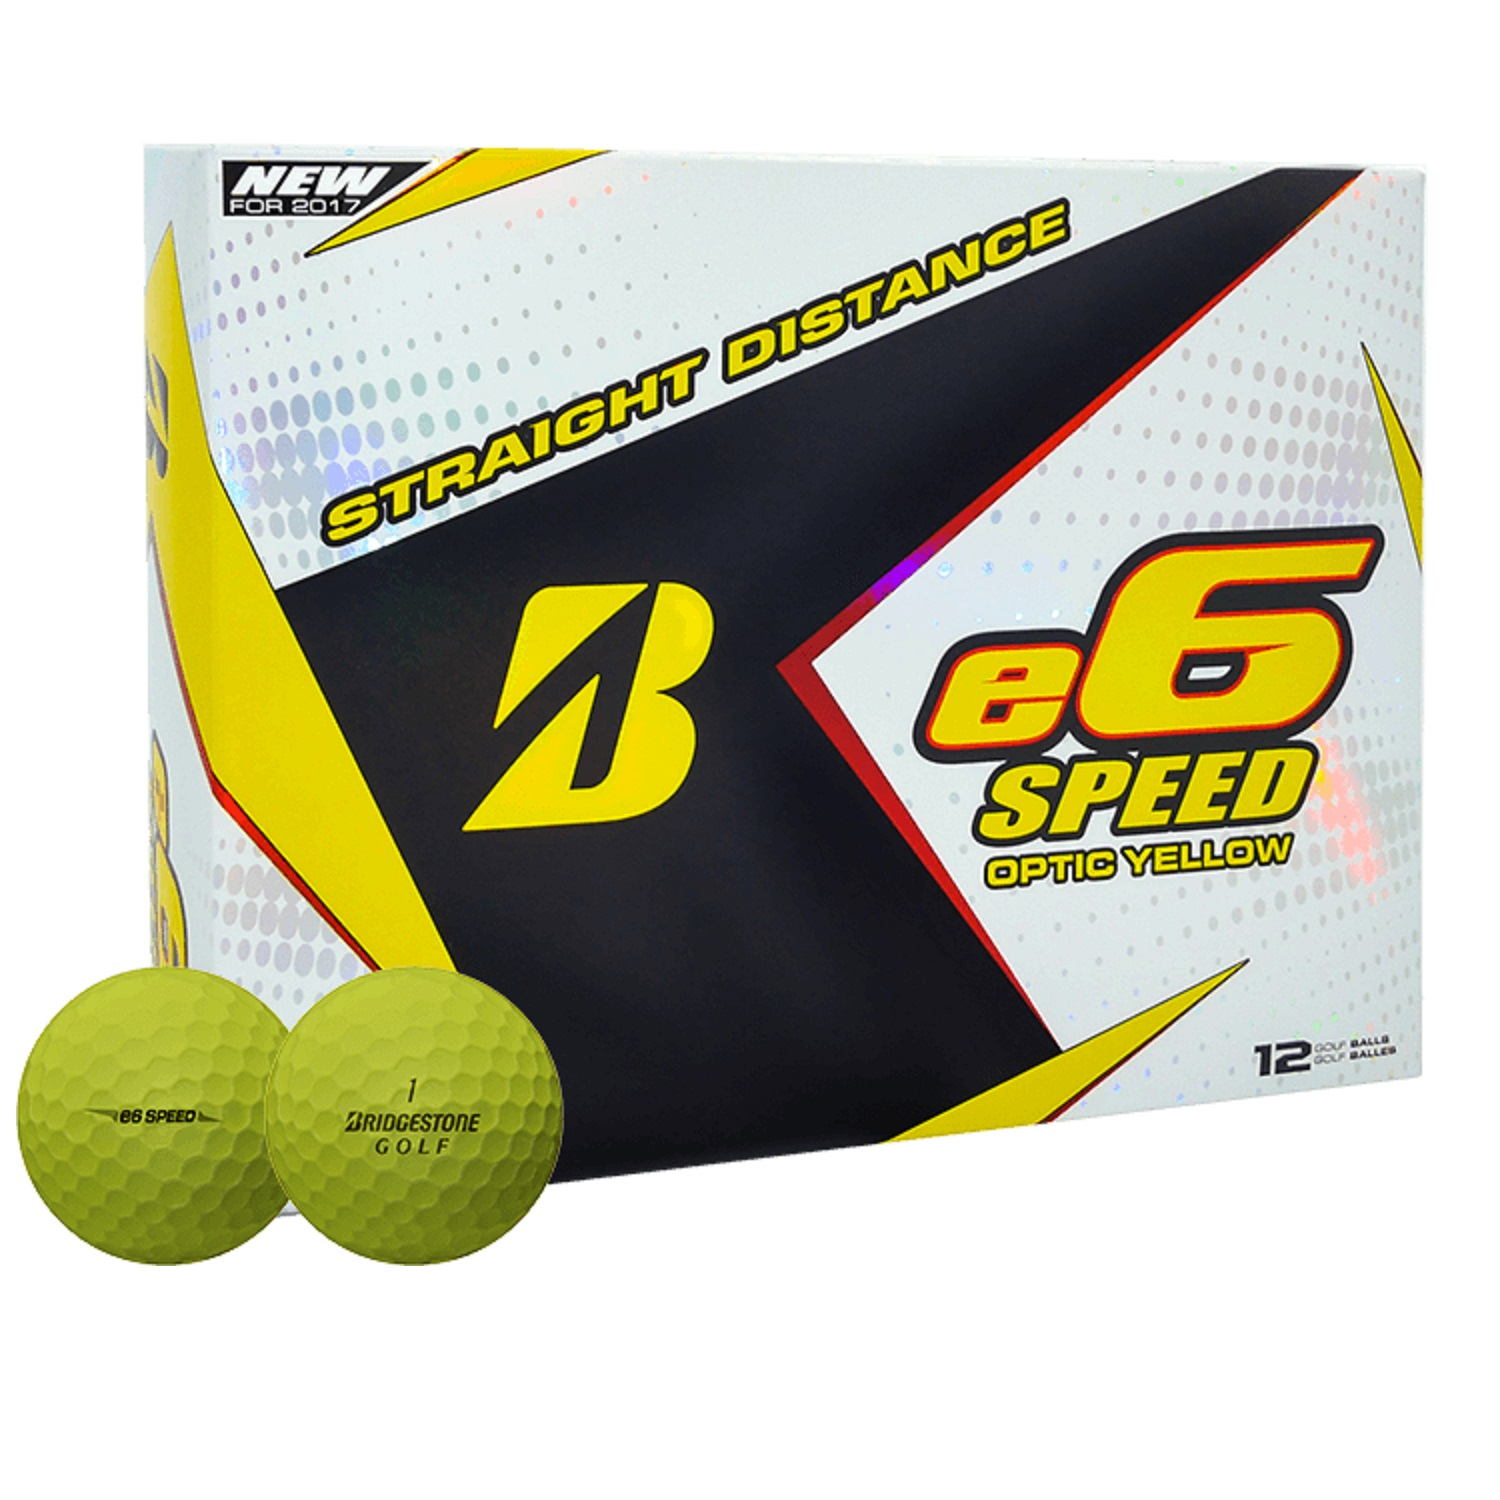 Bridgestone e6 Speed Golf Balls #1-#4 12-Ball Pack Yellow